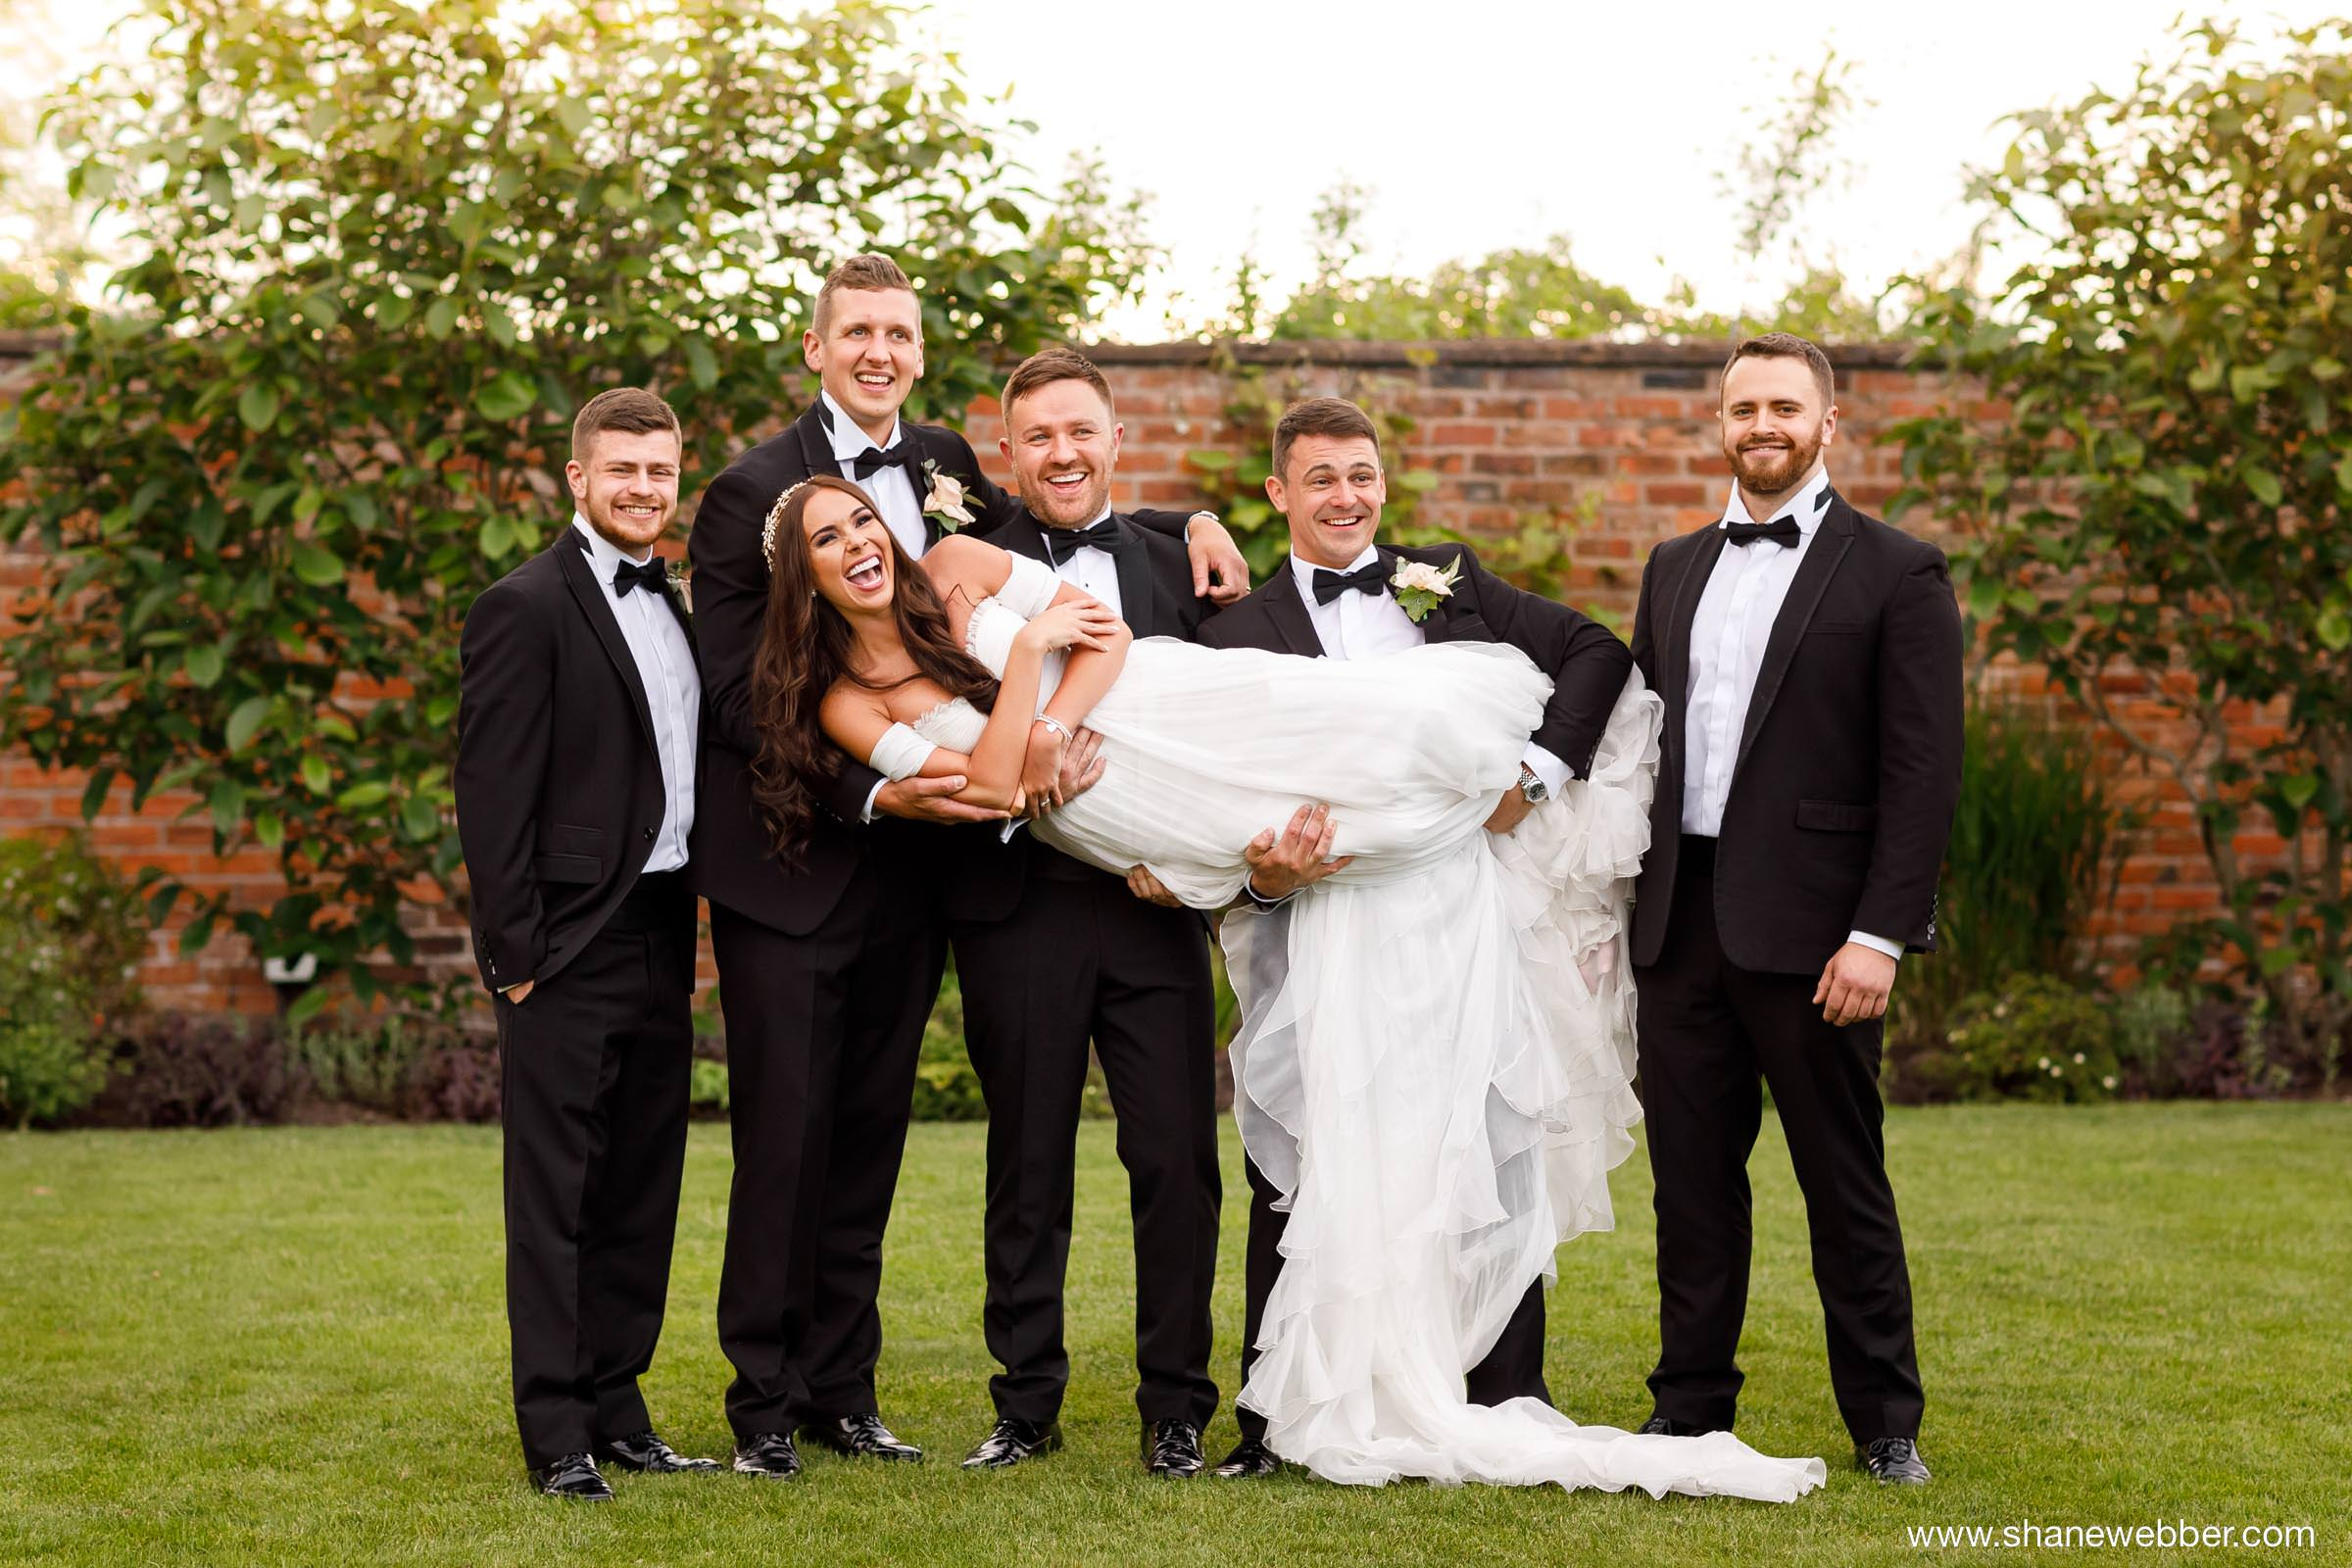 Group wedding photos in the garden at Colshaw Hall